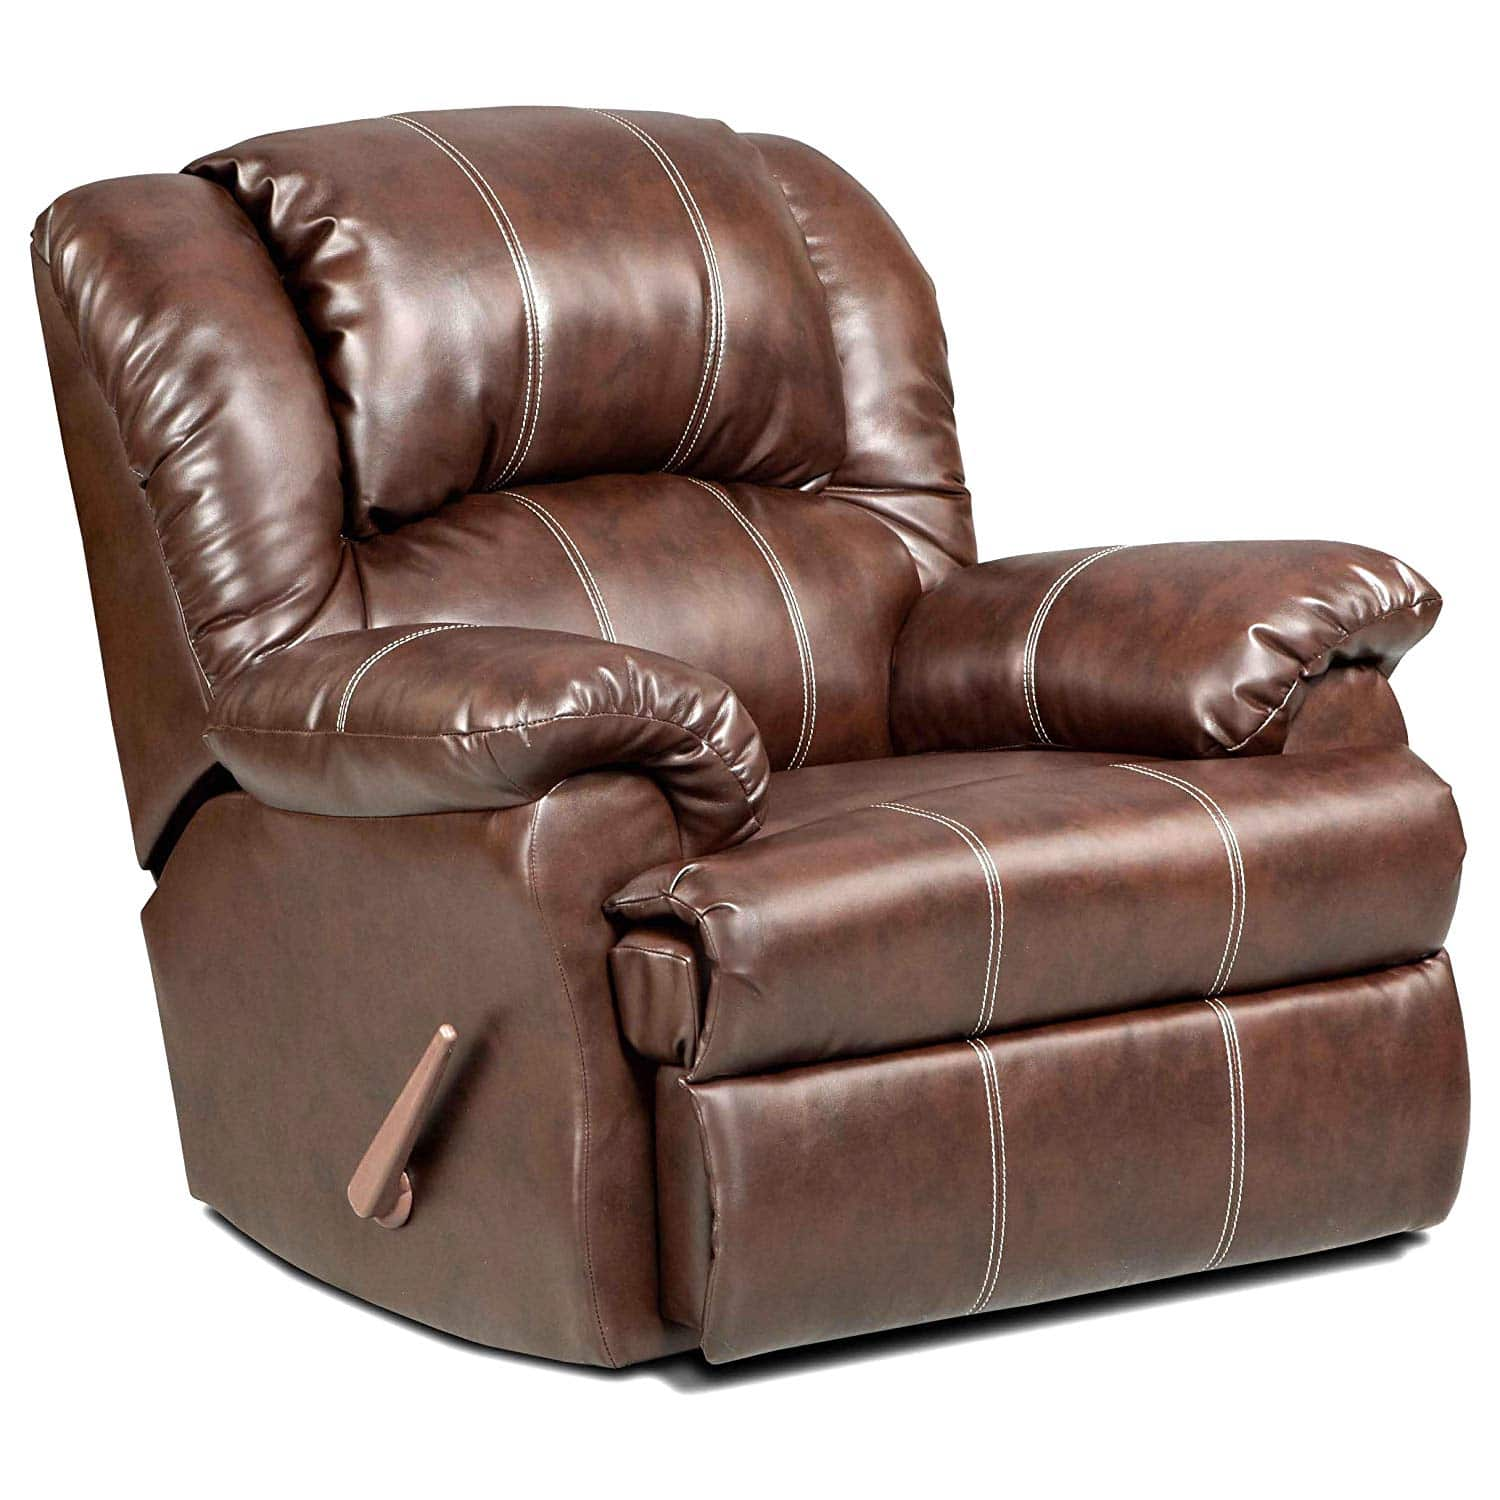 Best Furnitures: Best Recliners – Reviews And Comparisons